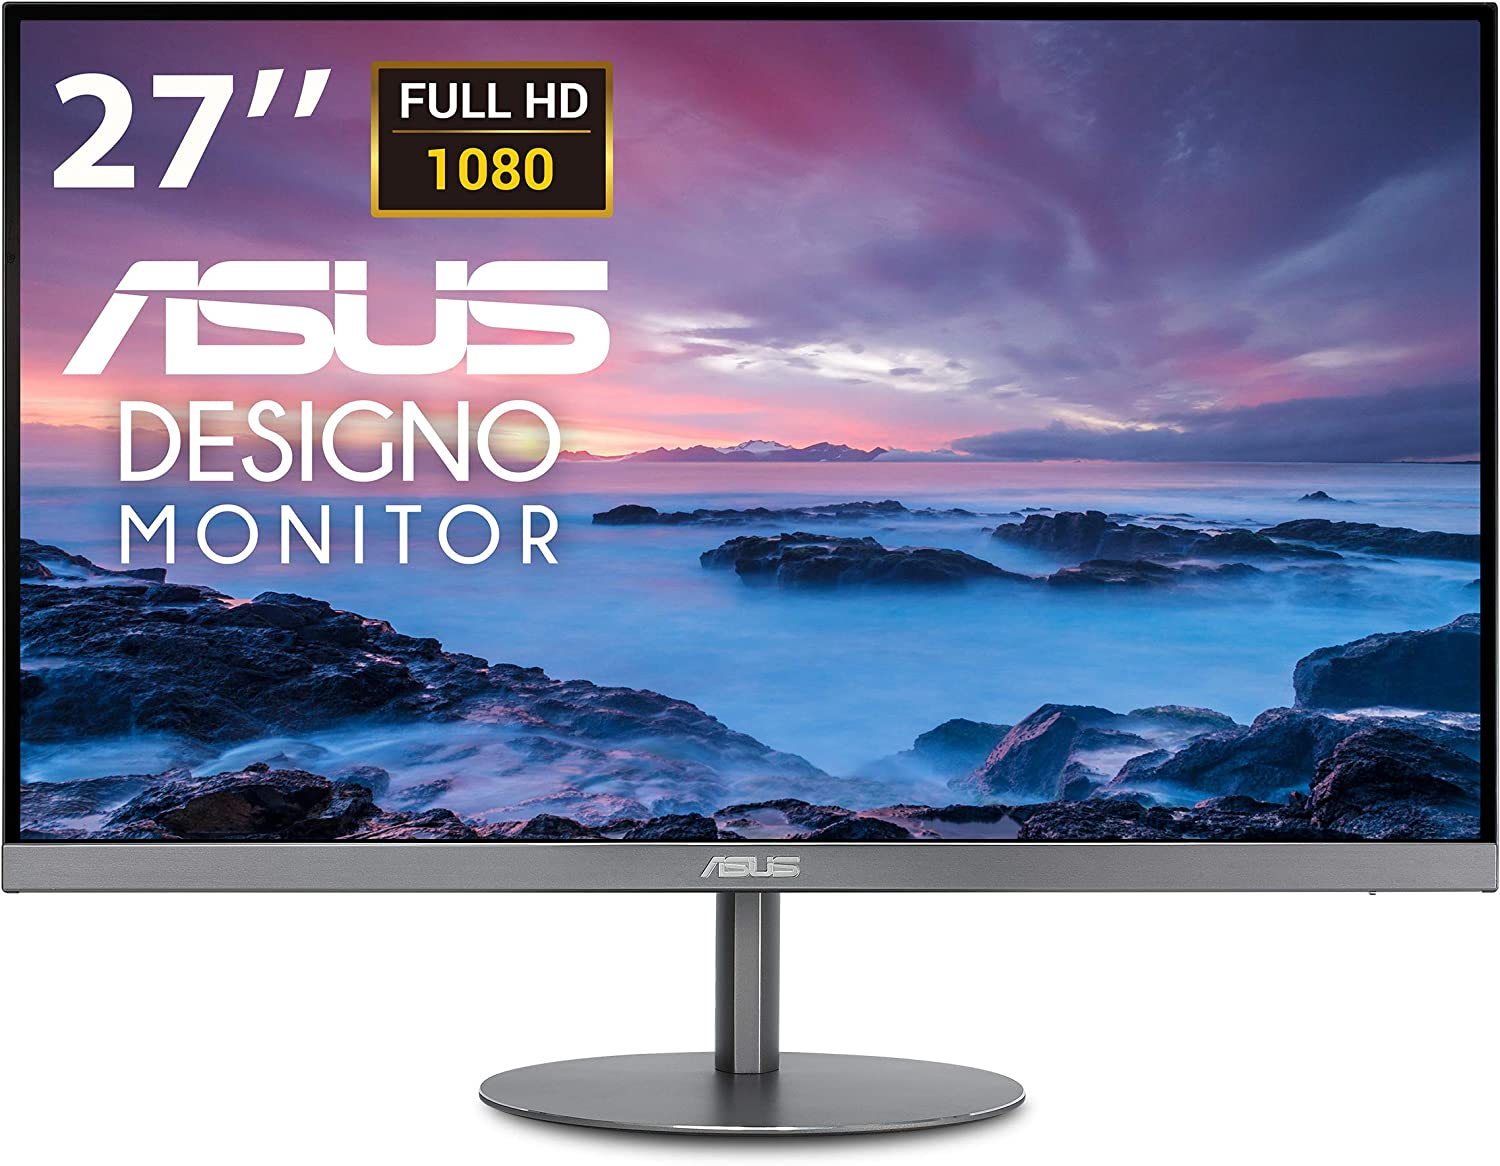 """ASUS Designo MZ279HL 27"""" 1080P IPS Eye Care Height Adjustable Monitor with HDMI, Stereo 3W Speakers"""